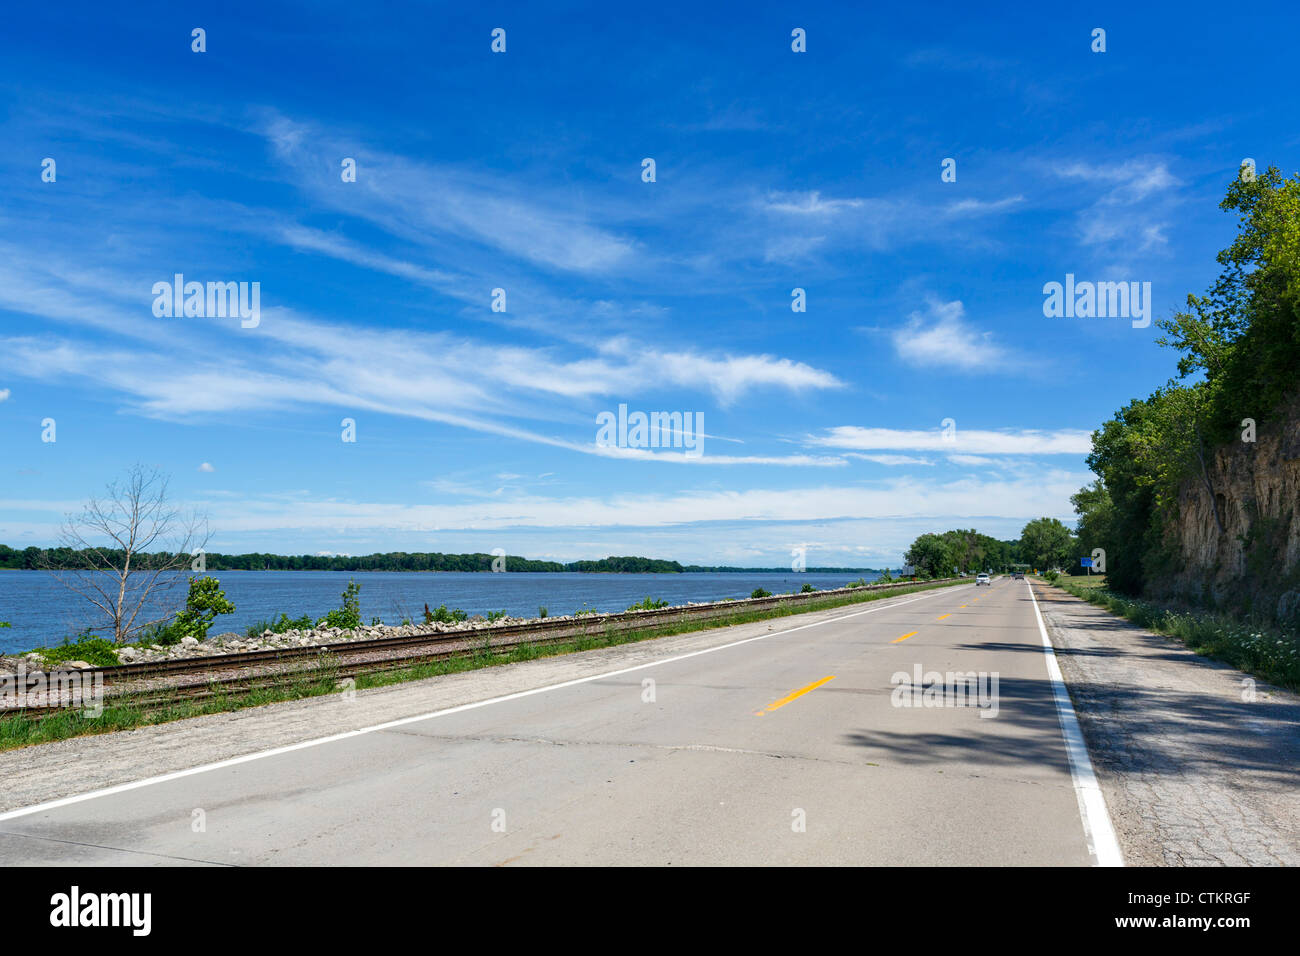 The Great River Road (MO 78) alongside the Mississippi River between Hannibal and St Louis, Missouri, USA - Stock Image